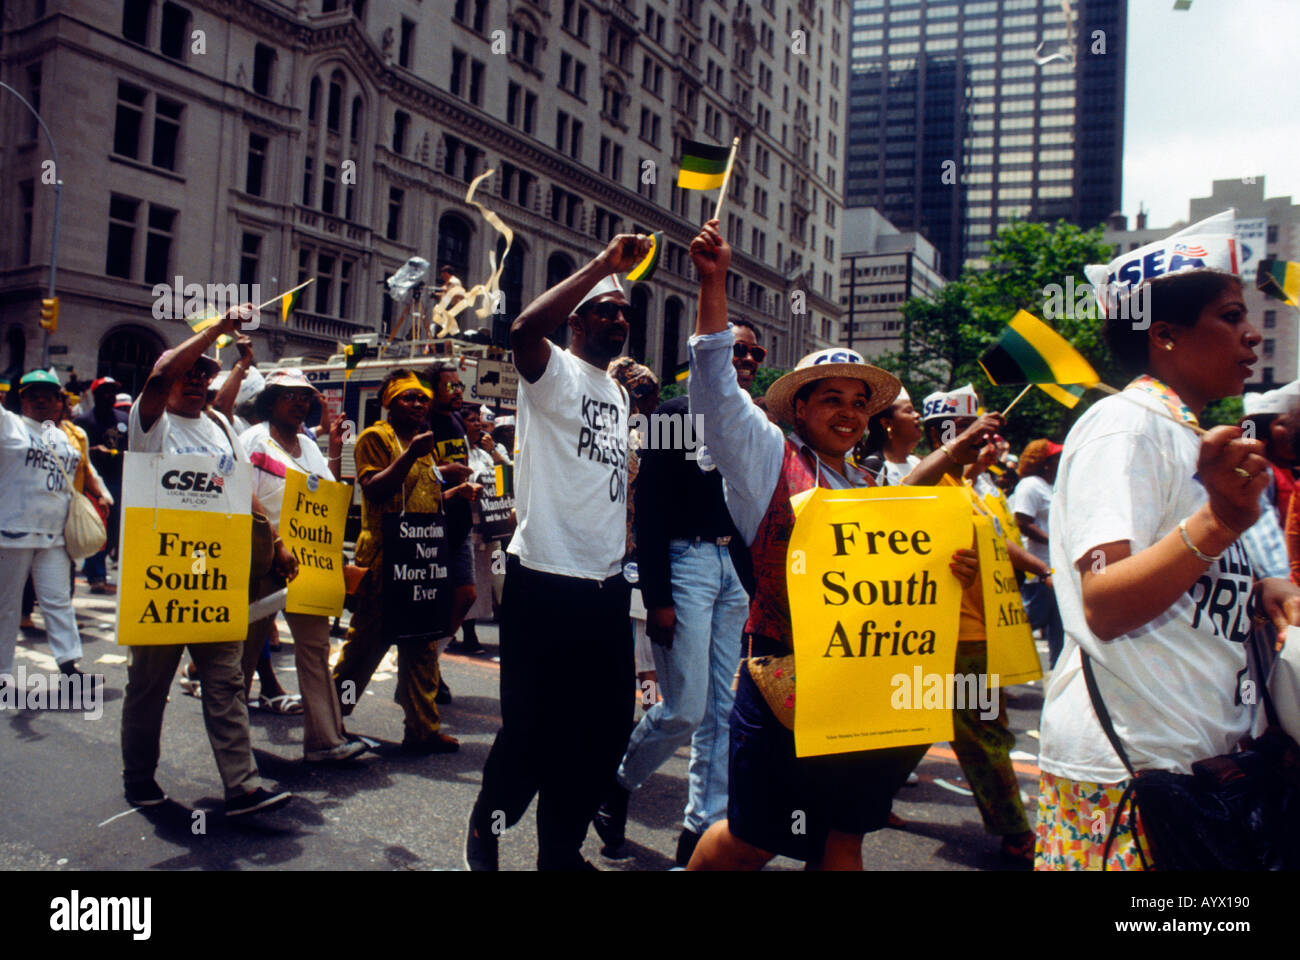 Union workers protest to end apartheid in South Africa on May 21 1991  - Stock Image